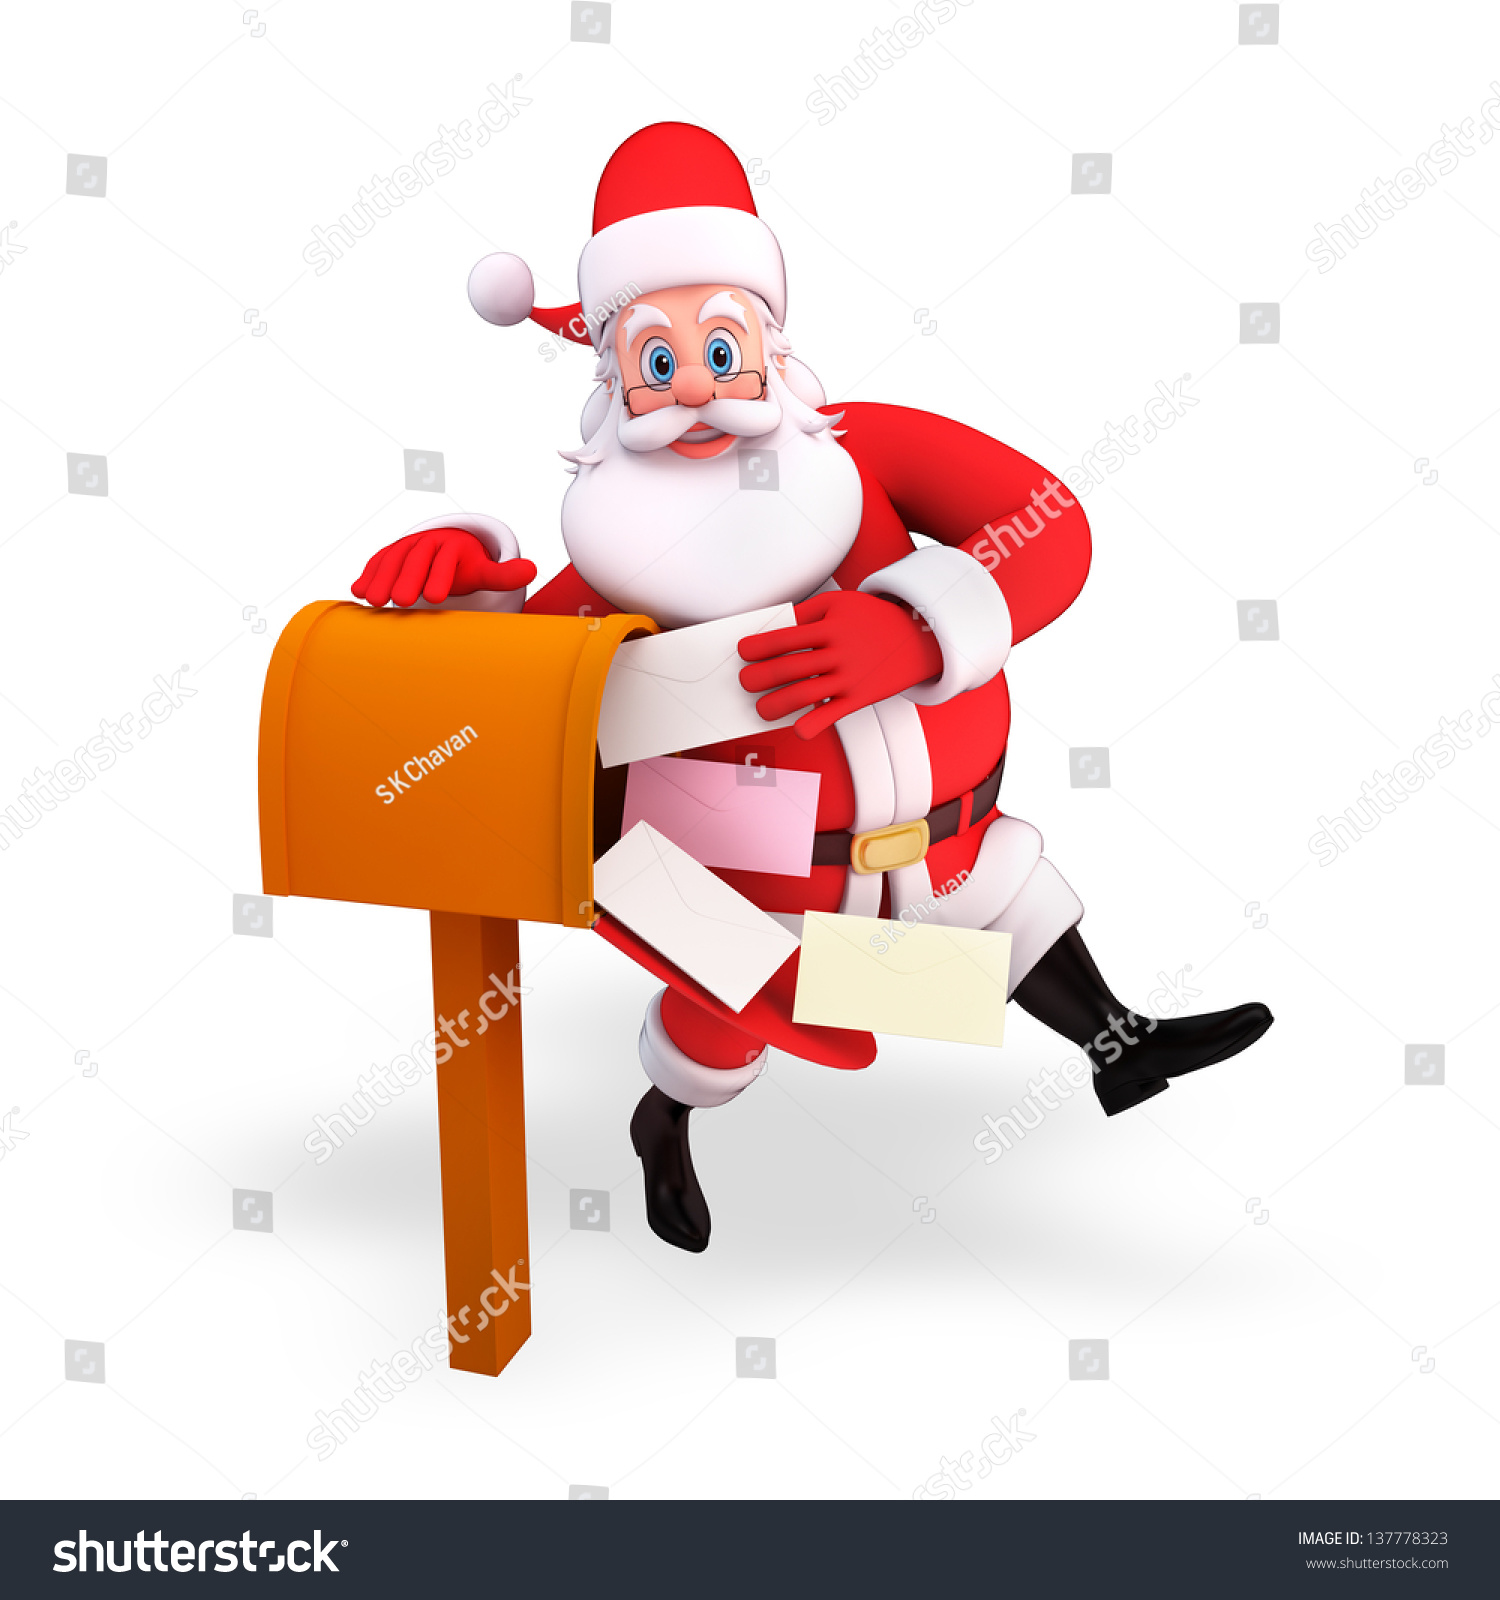 Illustration Santa Claus Letter Box Stock Illustration